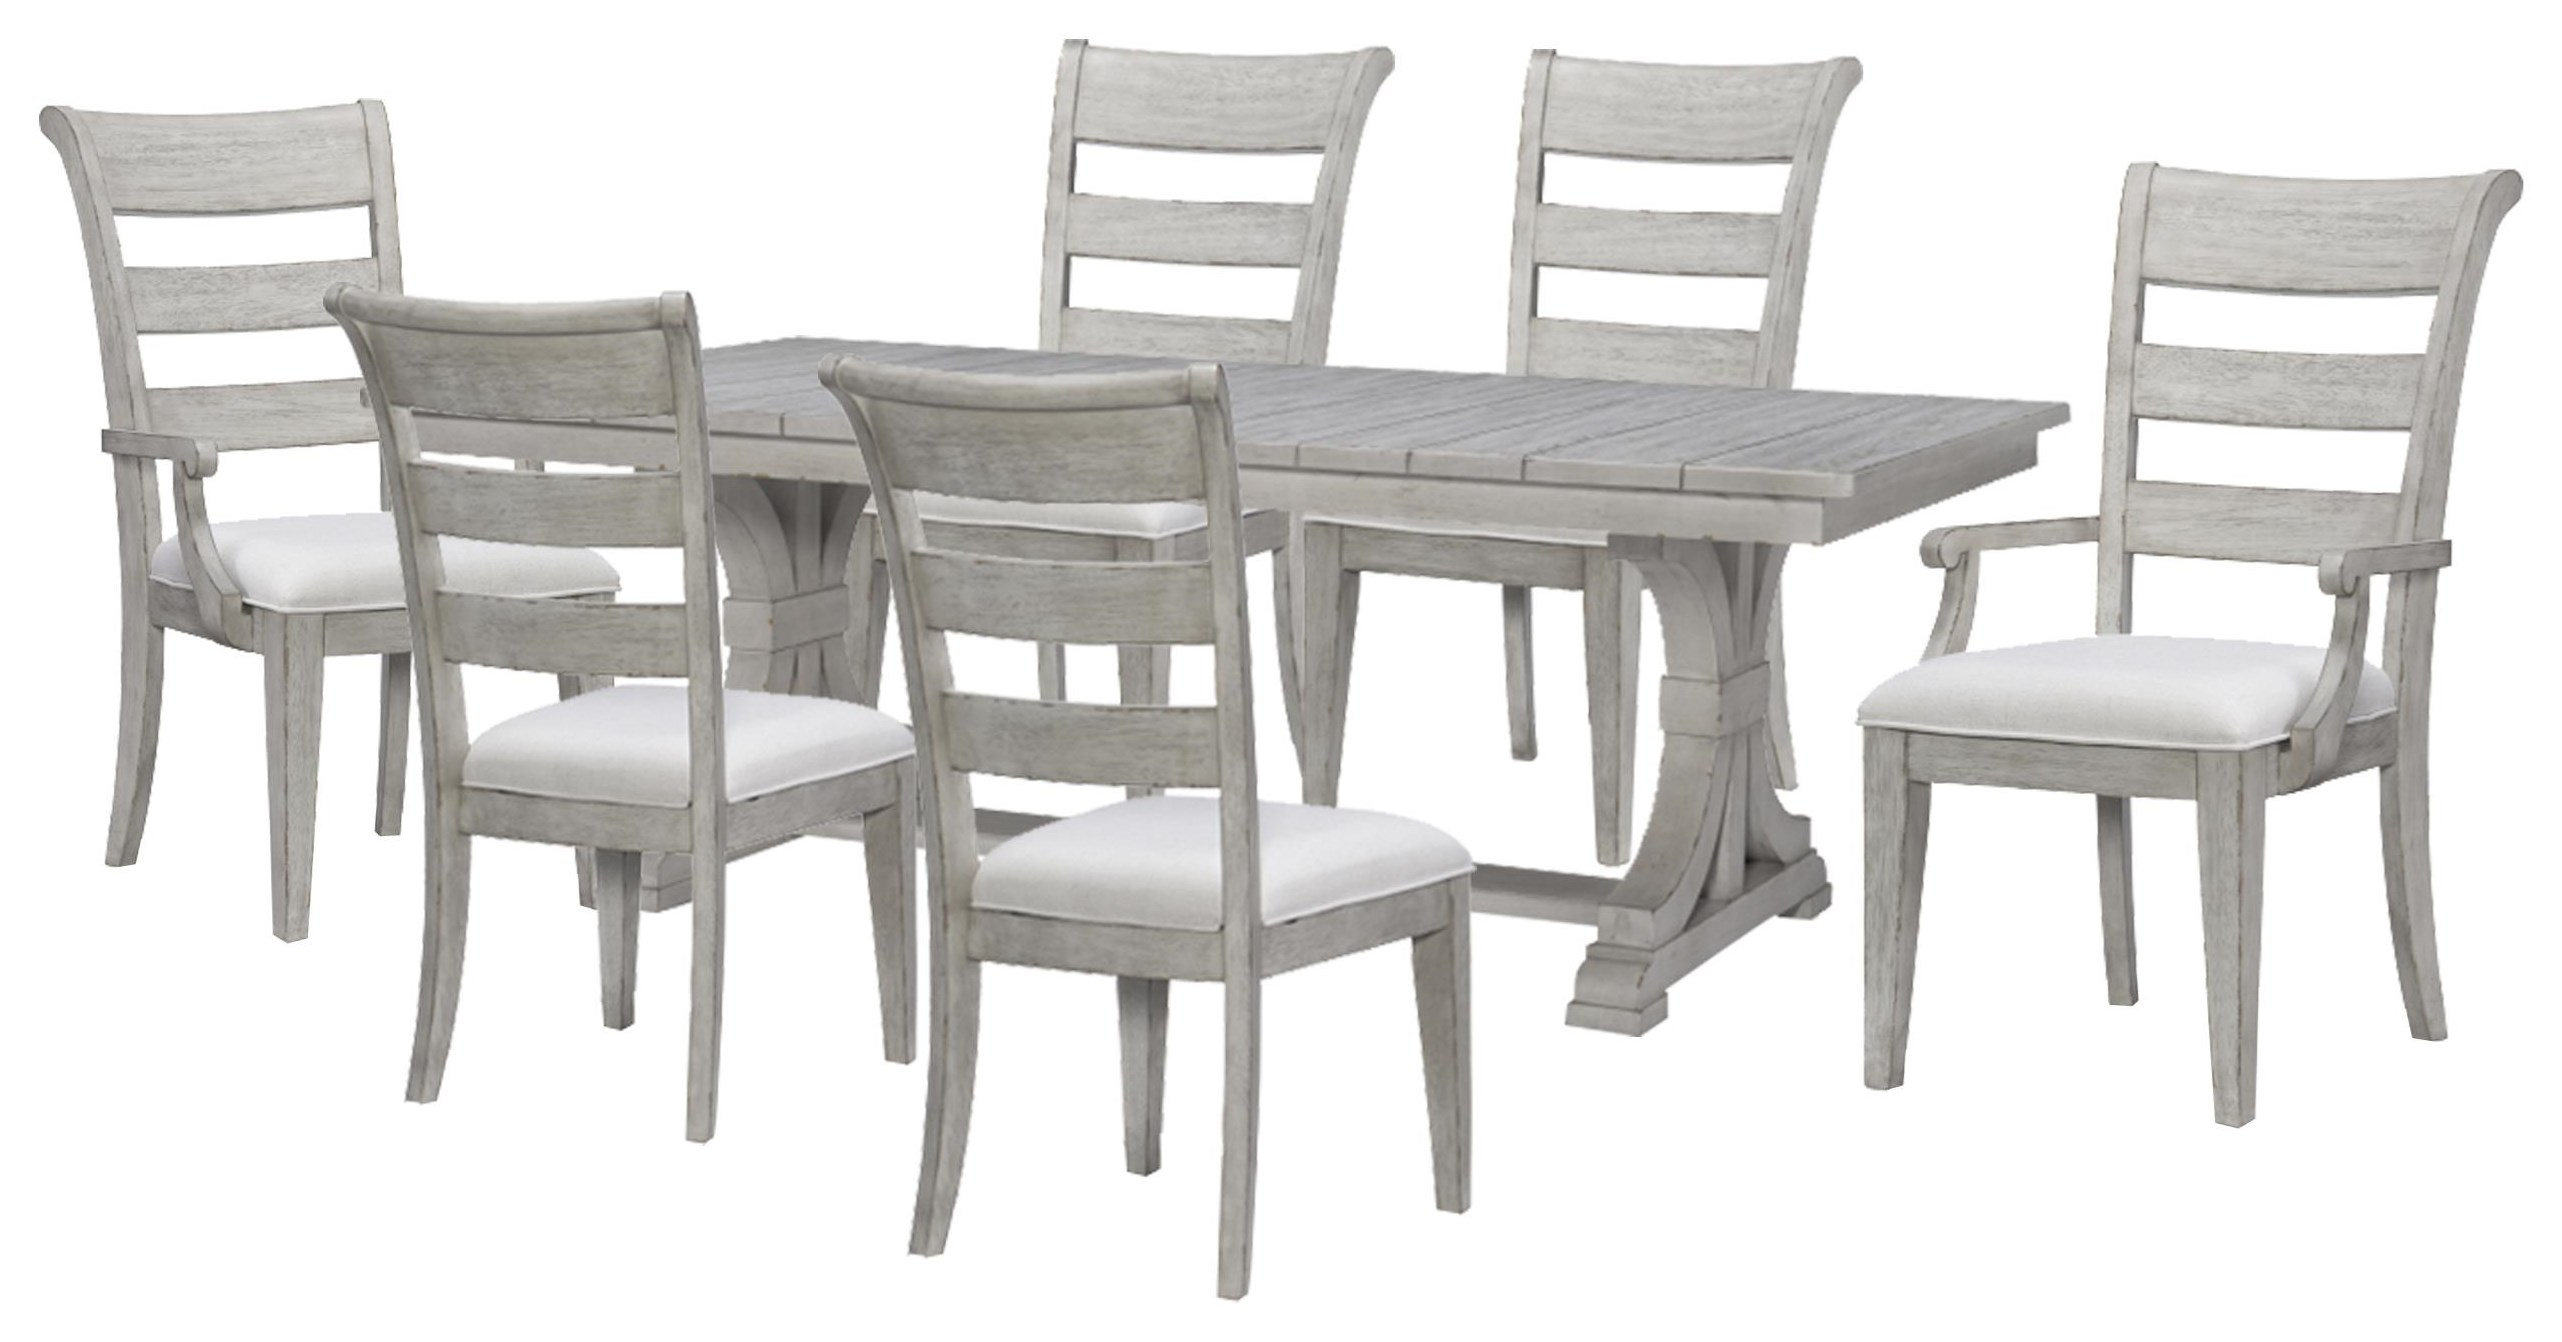 Belhaven Trestle Table, Side Chair, Arm Chair by Legacy Classic at Johnny Janosik